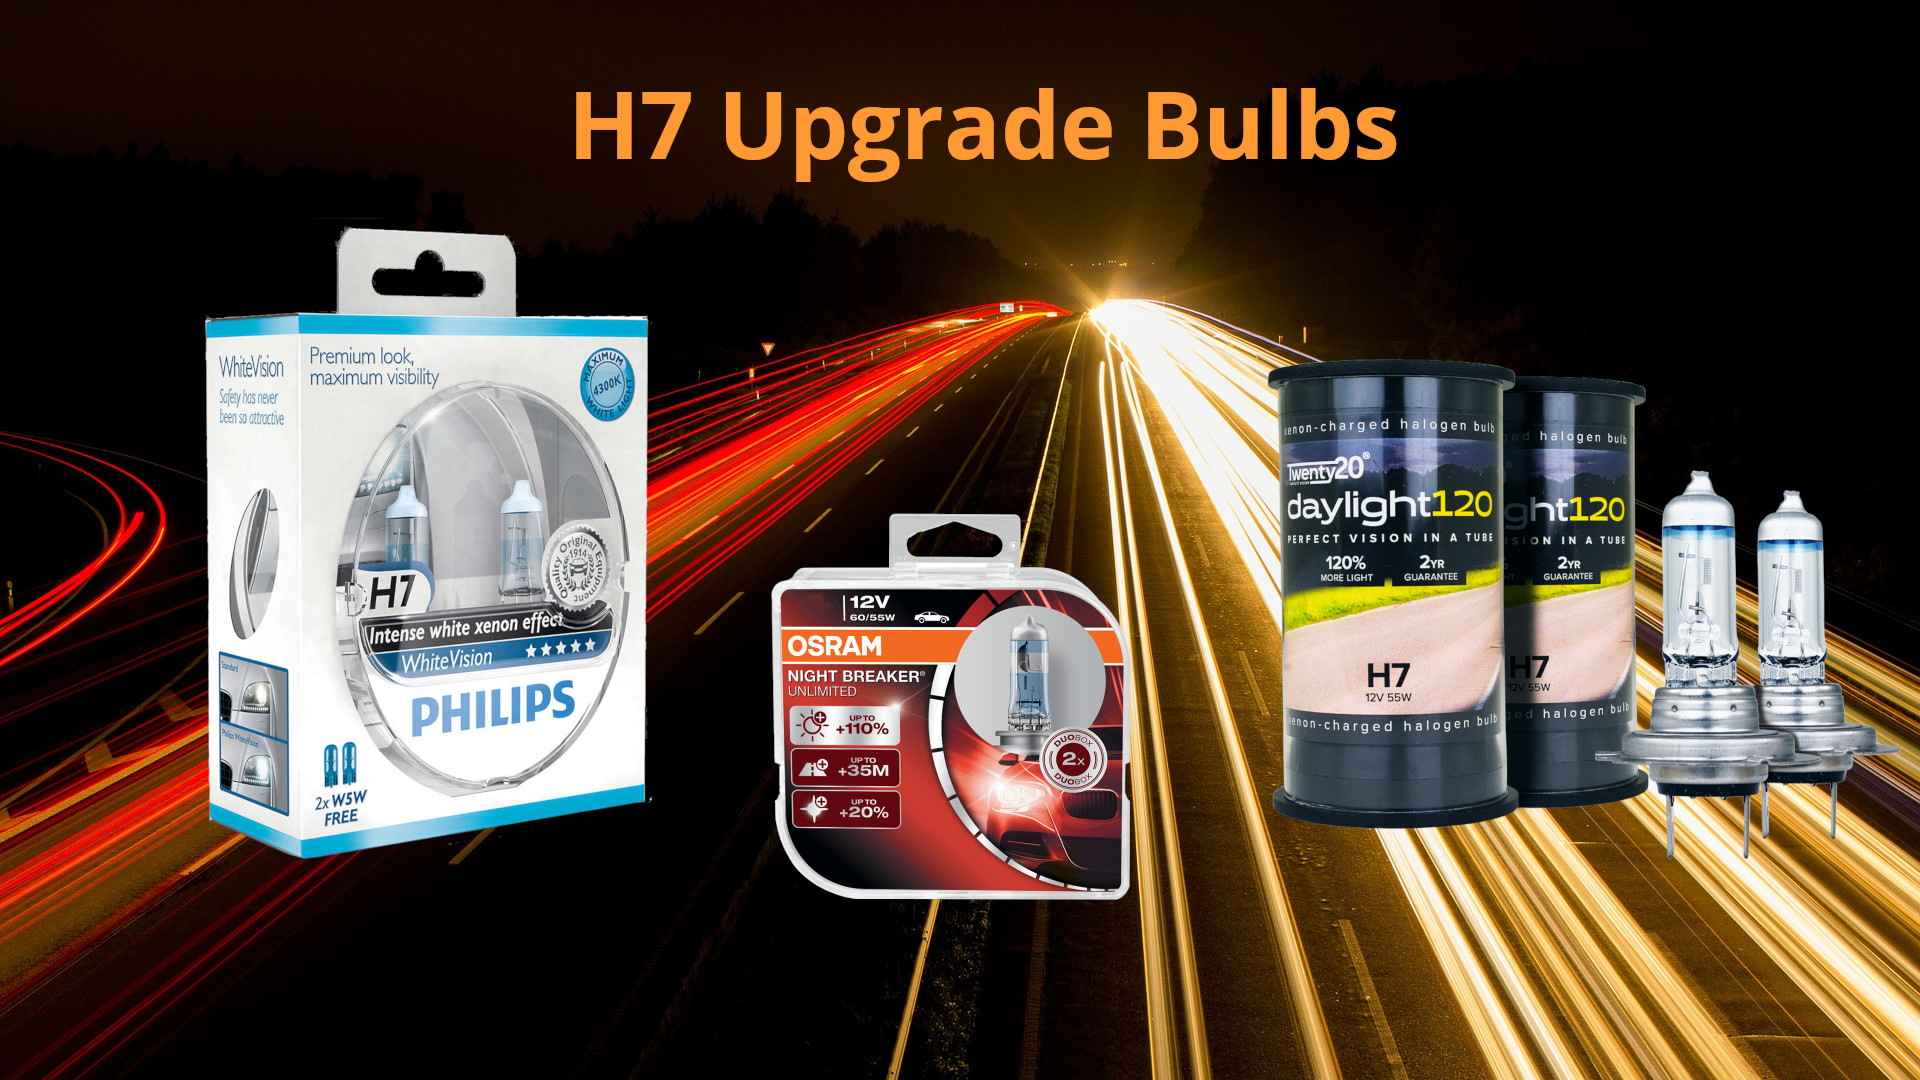 H7 Upgrade Bulbs